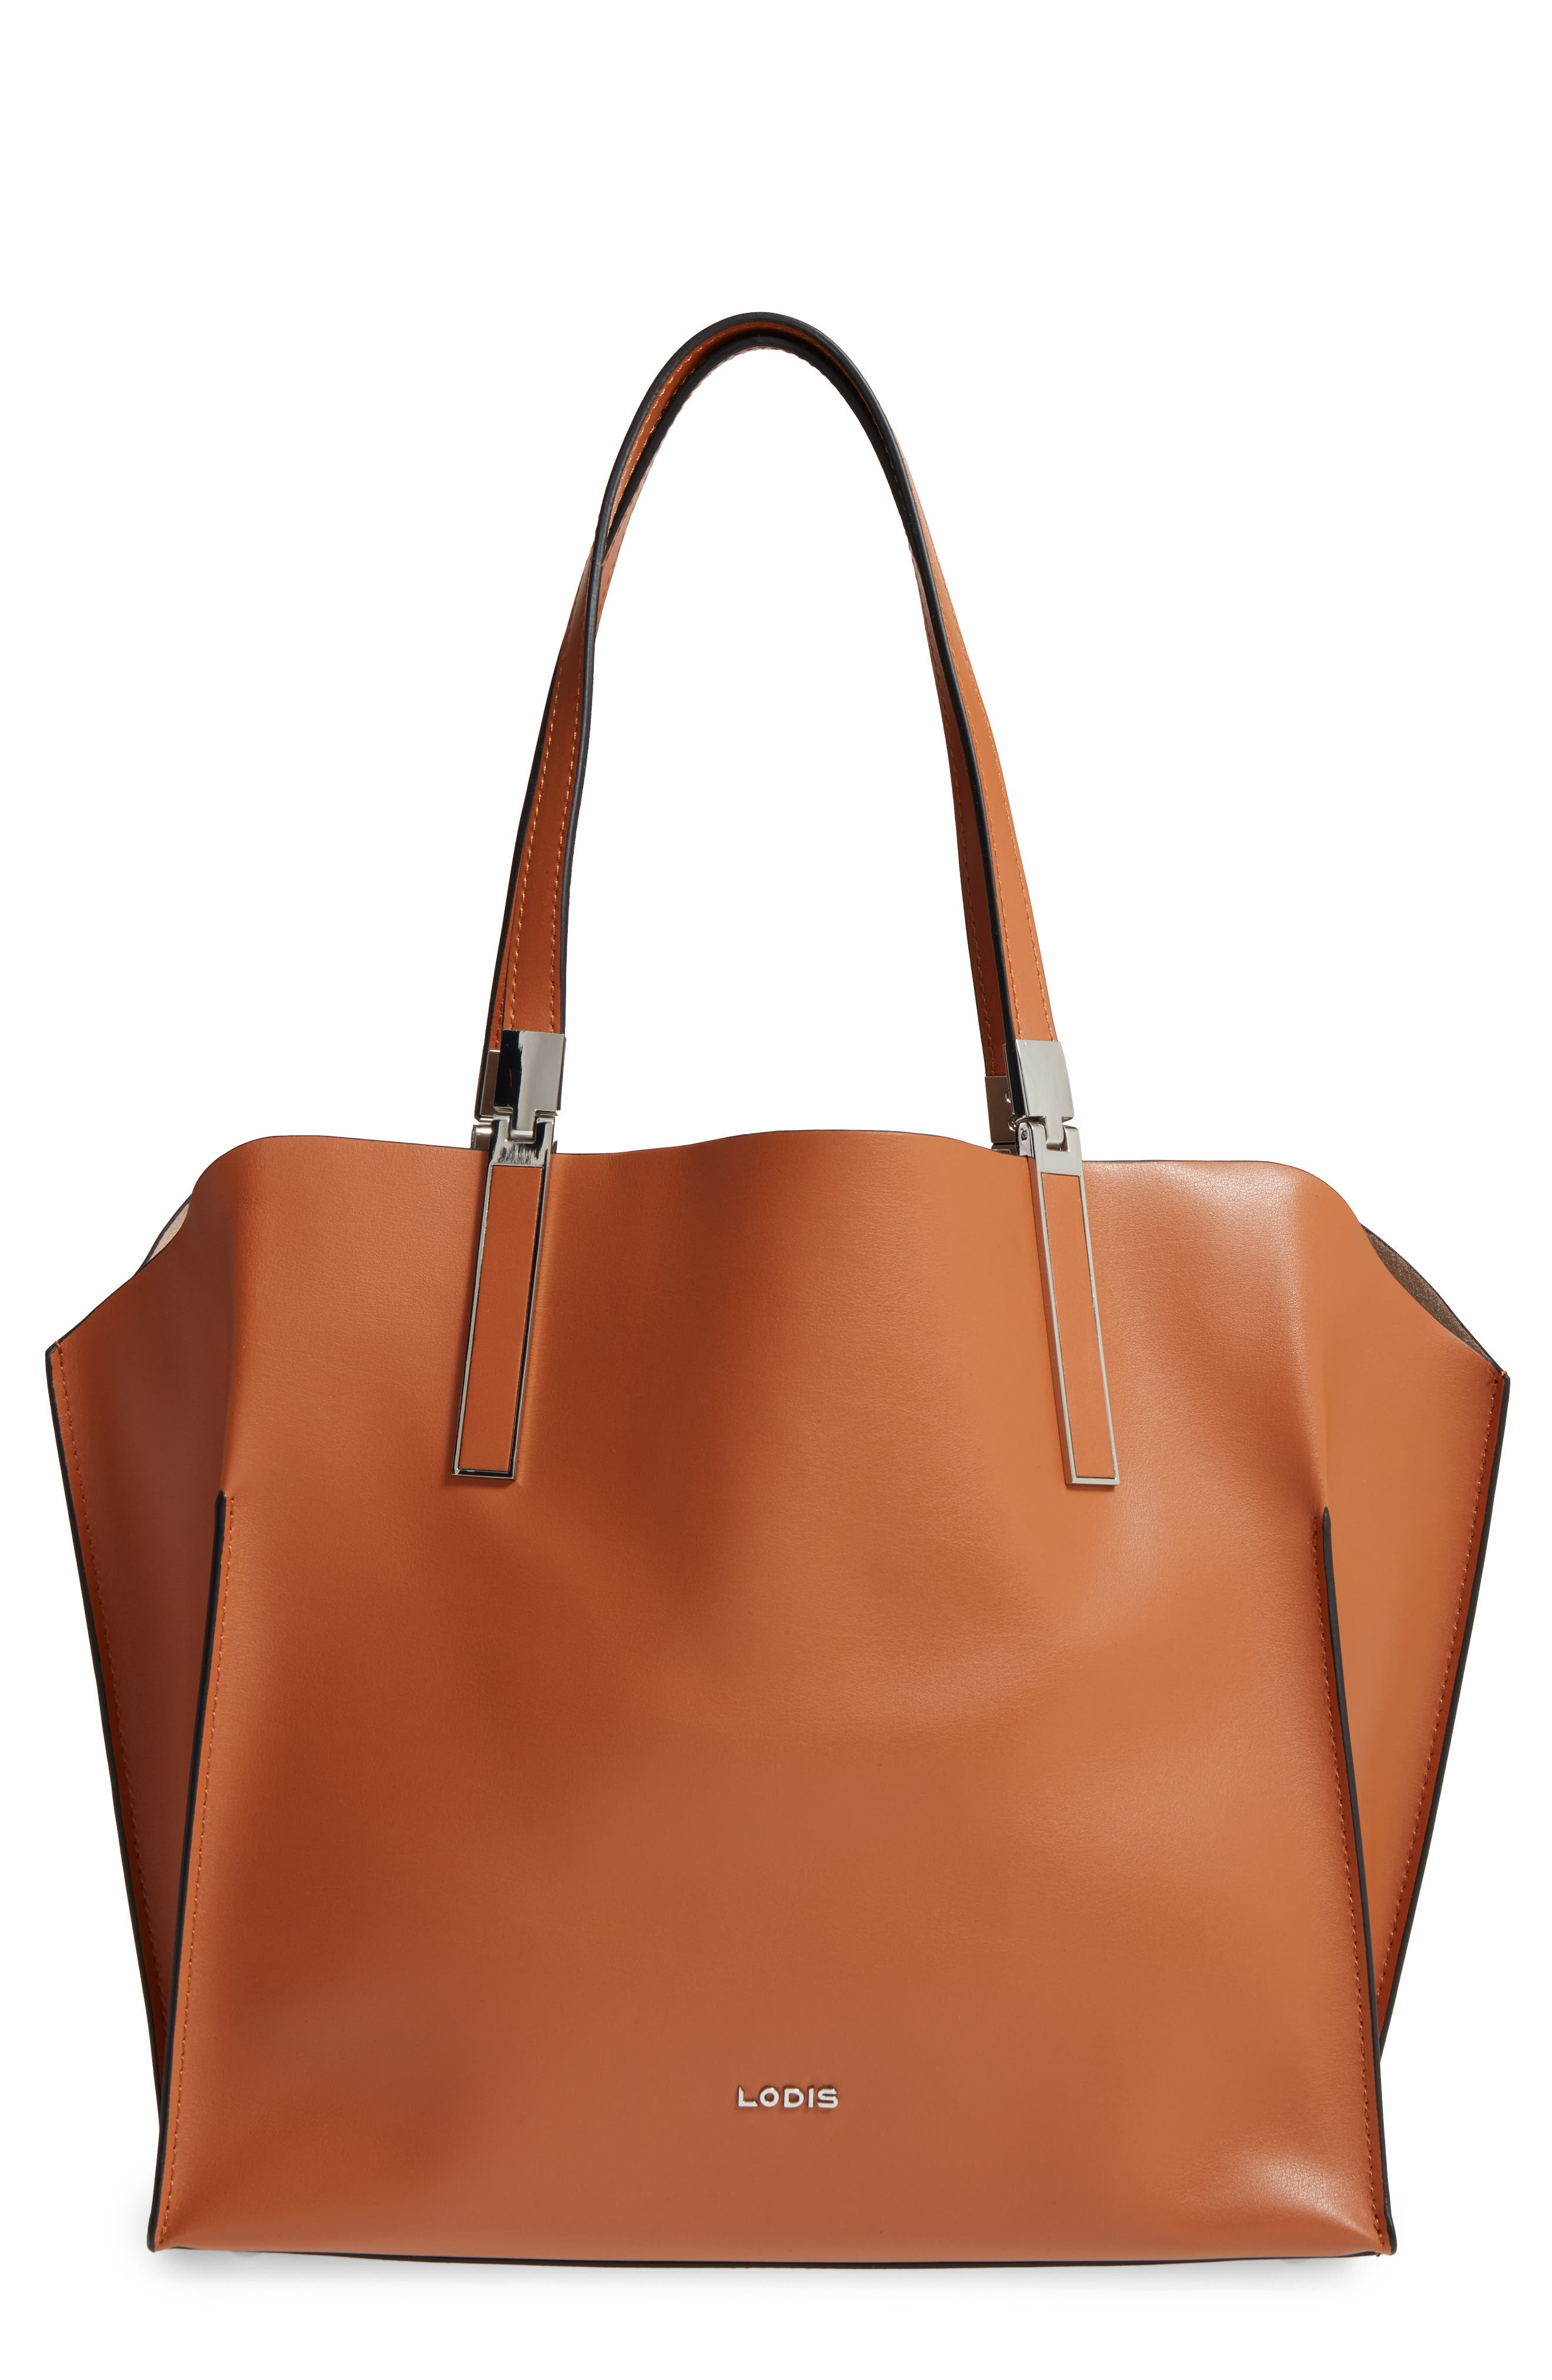 Main Image - Lodis 'Blair Collection - Anita' Leather Tote